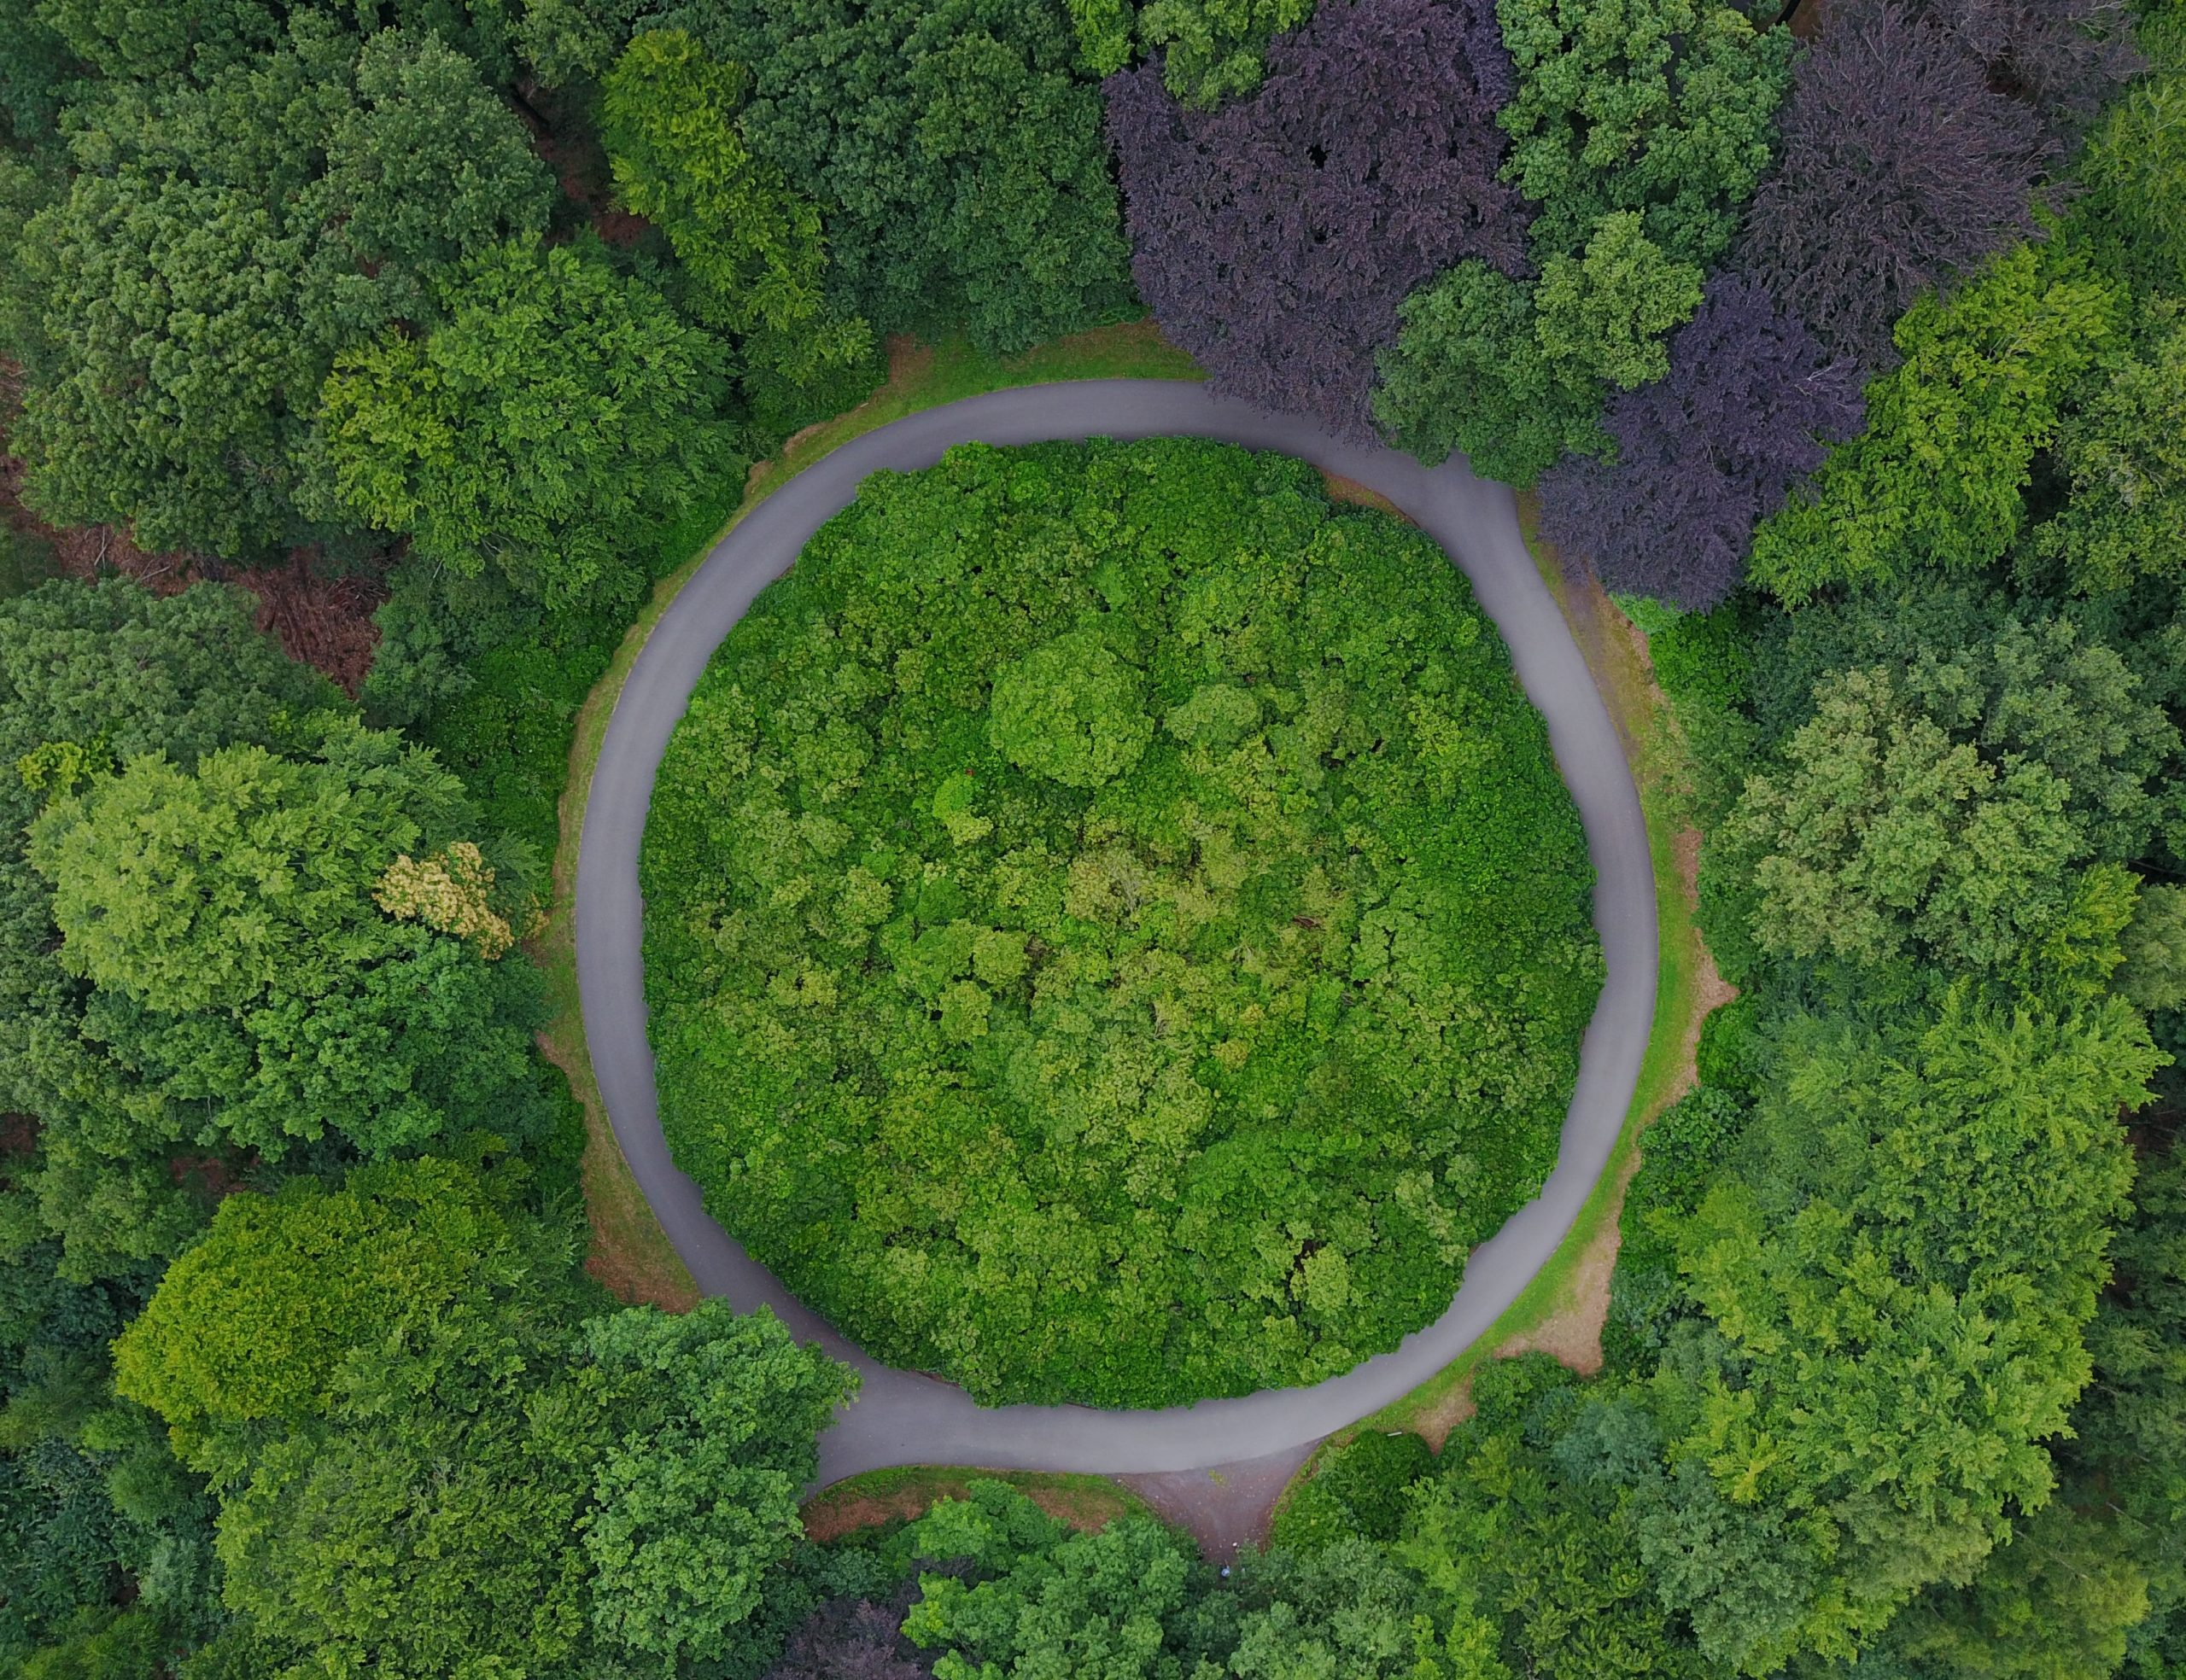 GreenBiz offers Free Virtual Conference for Circular Economy: Circularity 20 August 25-27, 2020